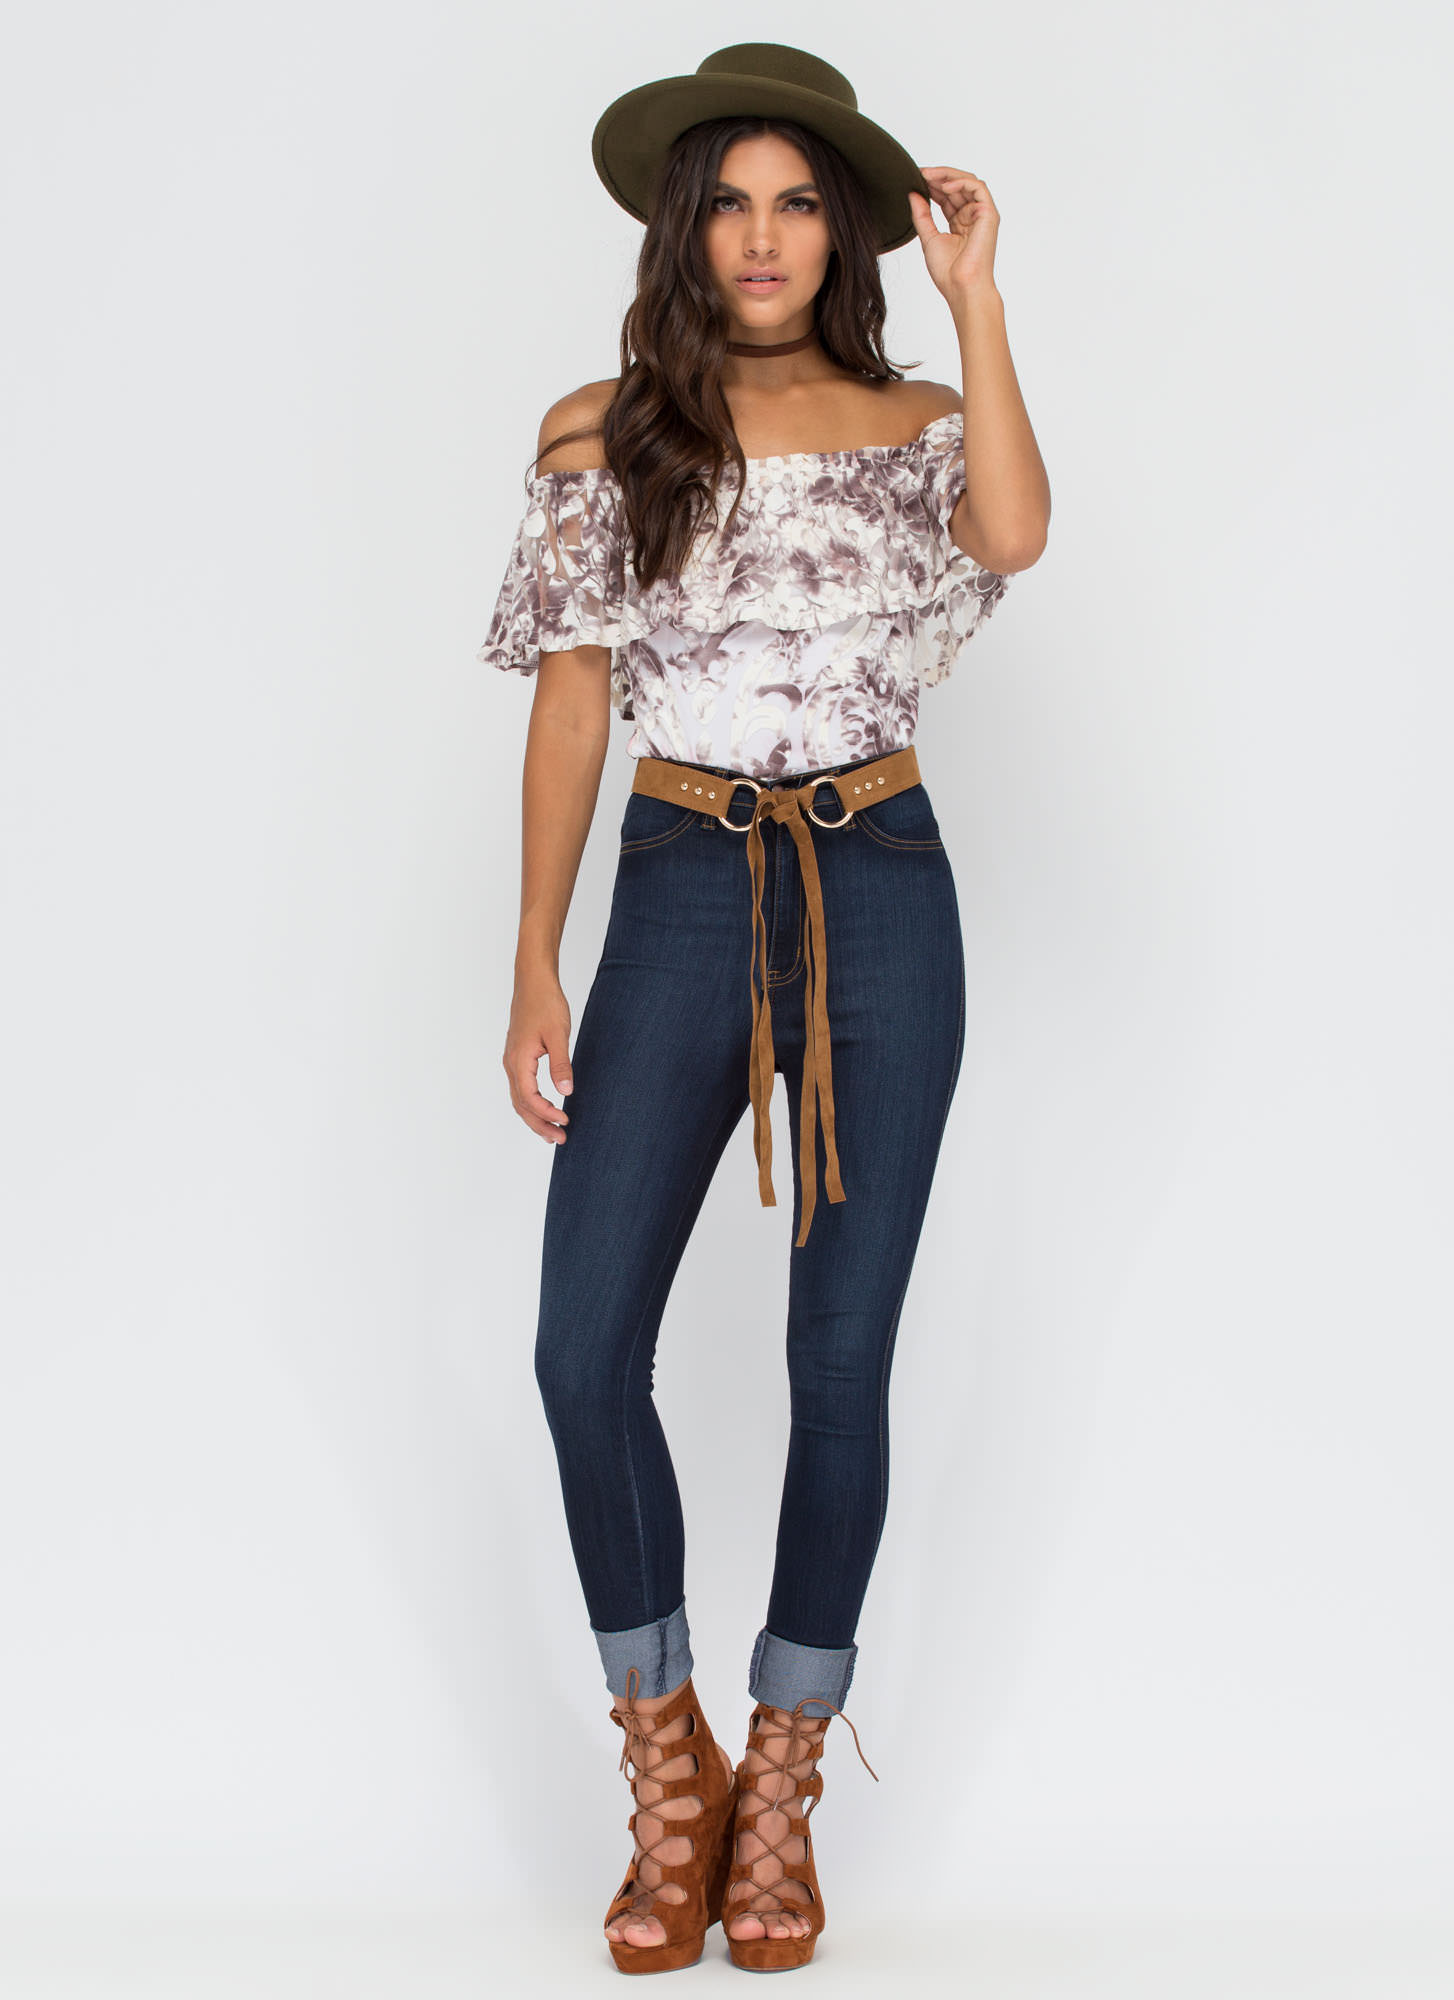 Give It A Swirl Ornate Off-Shoulder Top MULTI